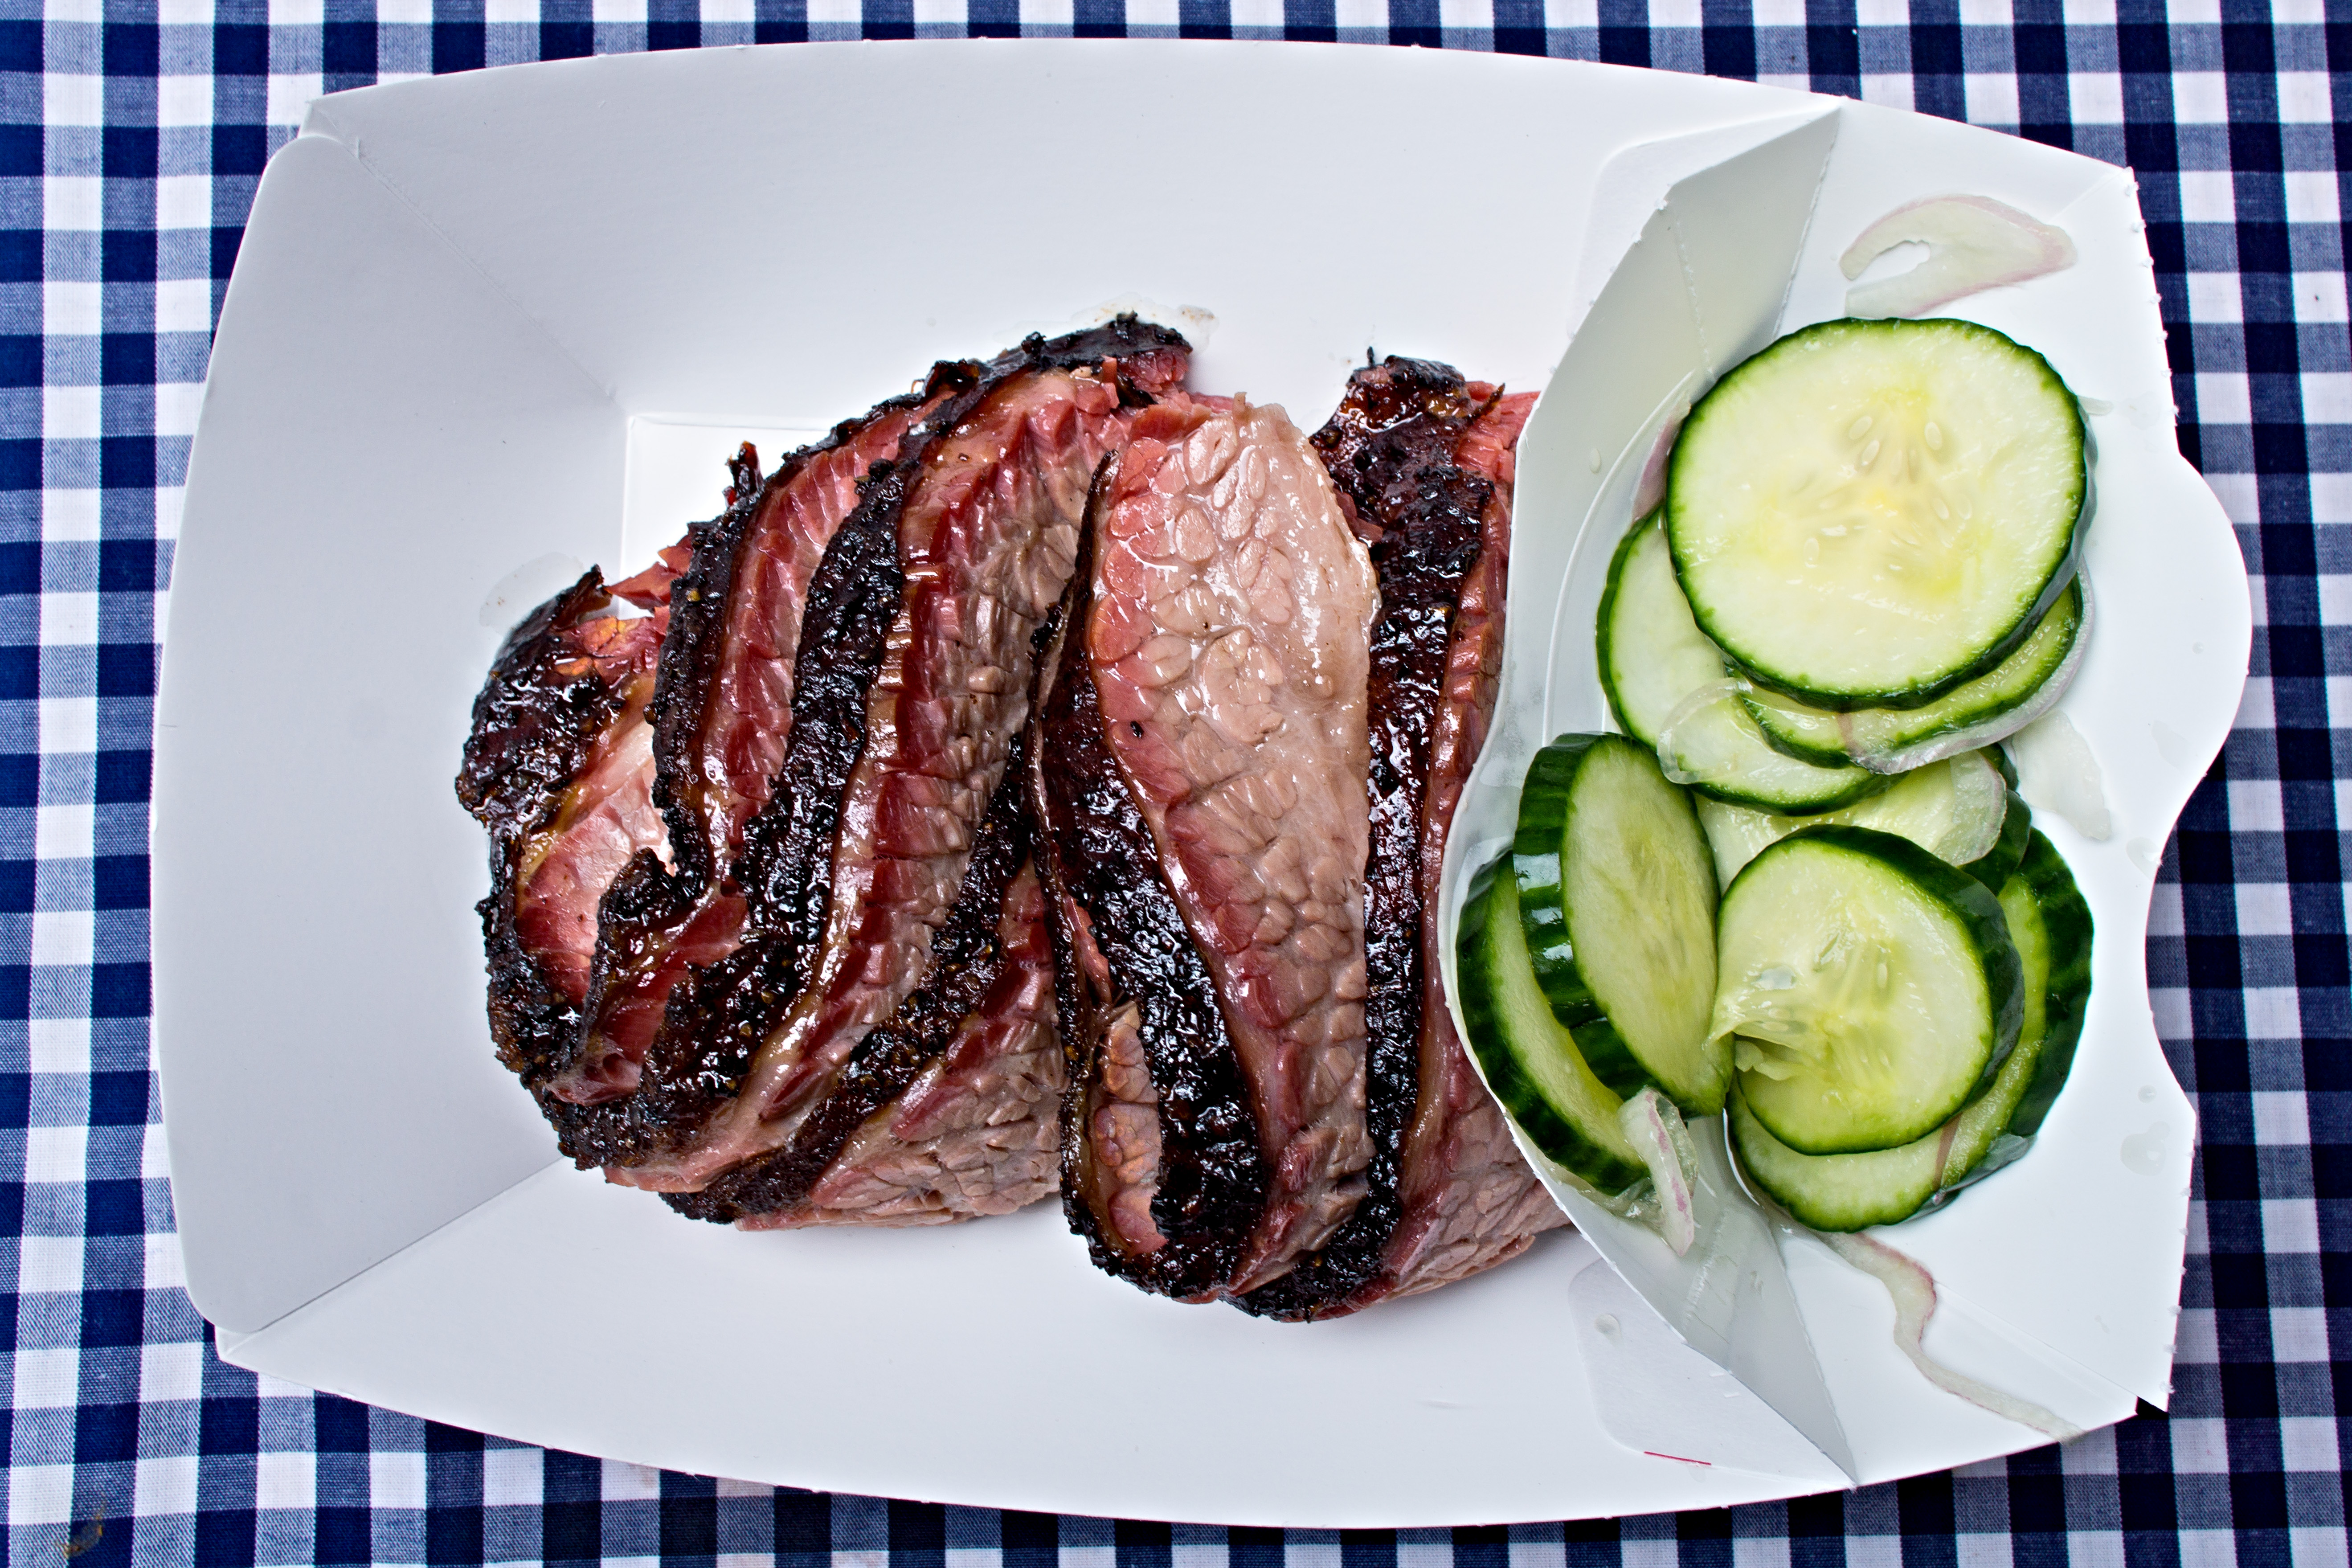 Hill Country brisket